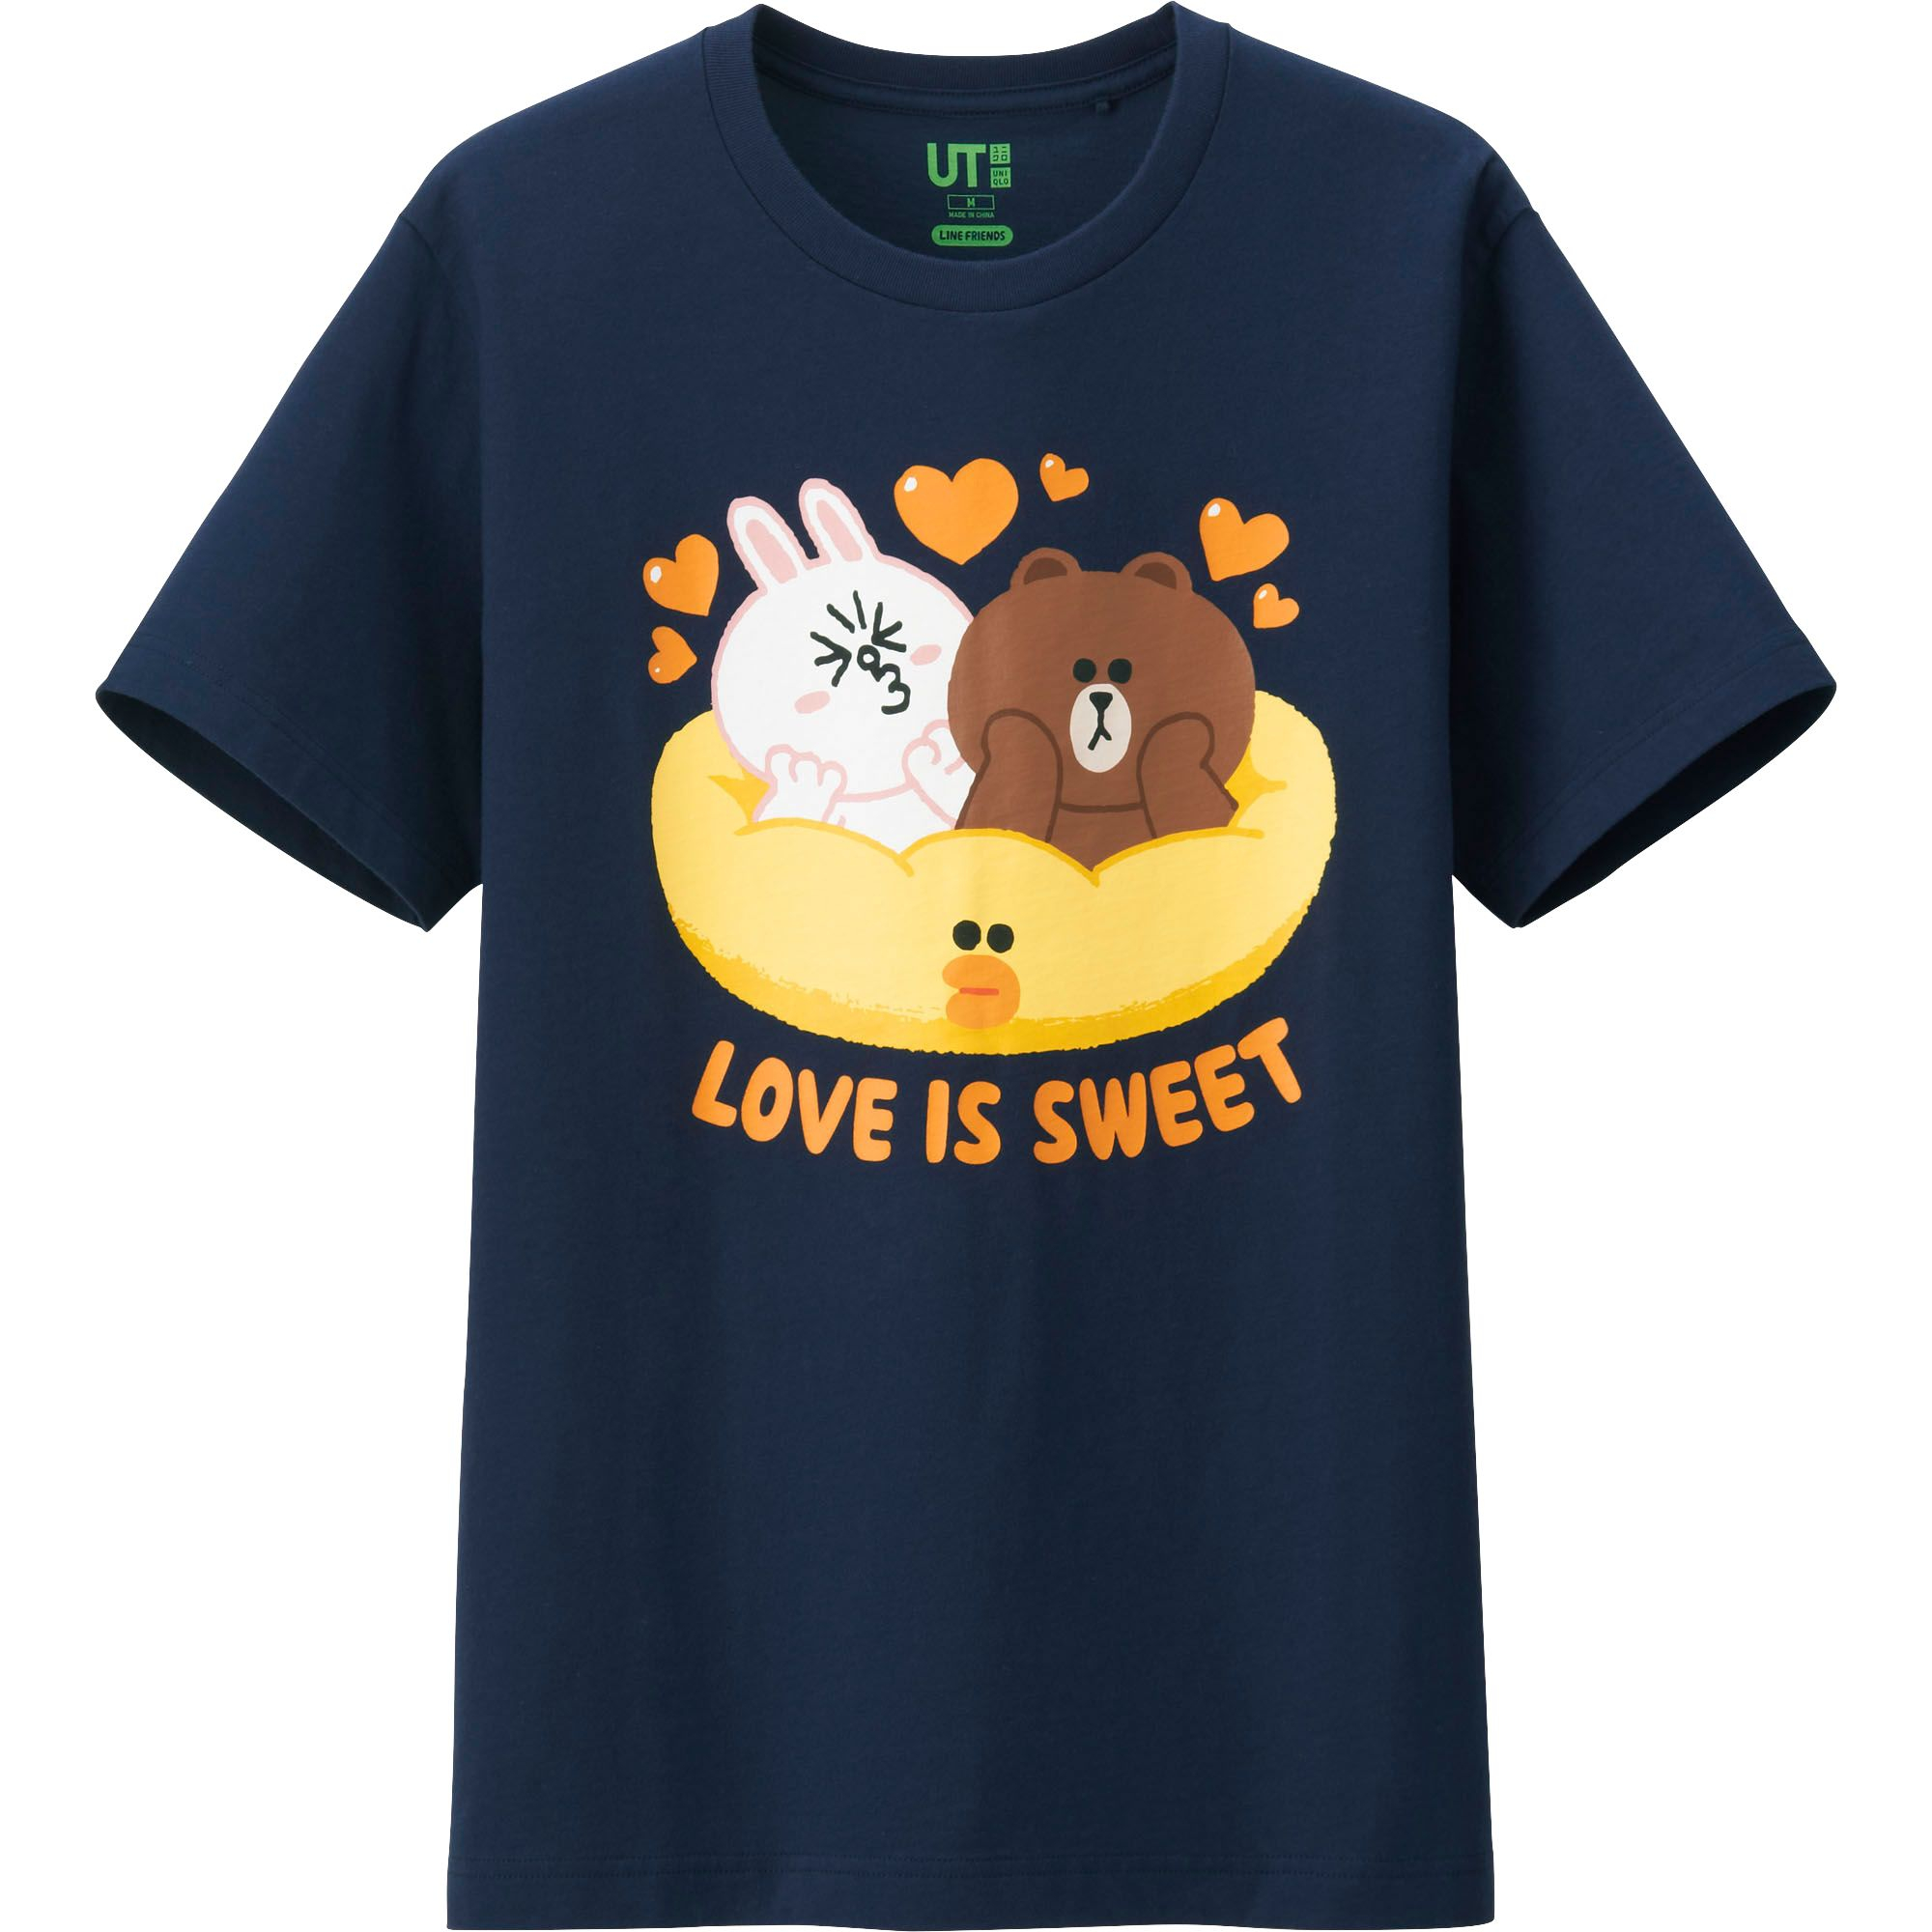 Uniqlo men line friends graphic short sleeve t shirt in for Uniqlo t shirt sizing